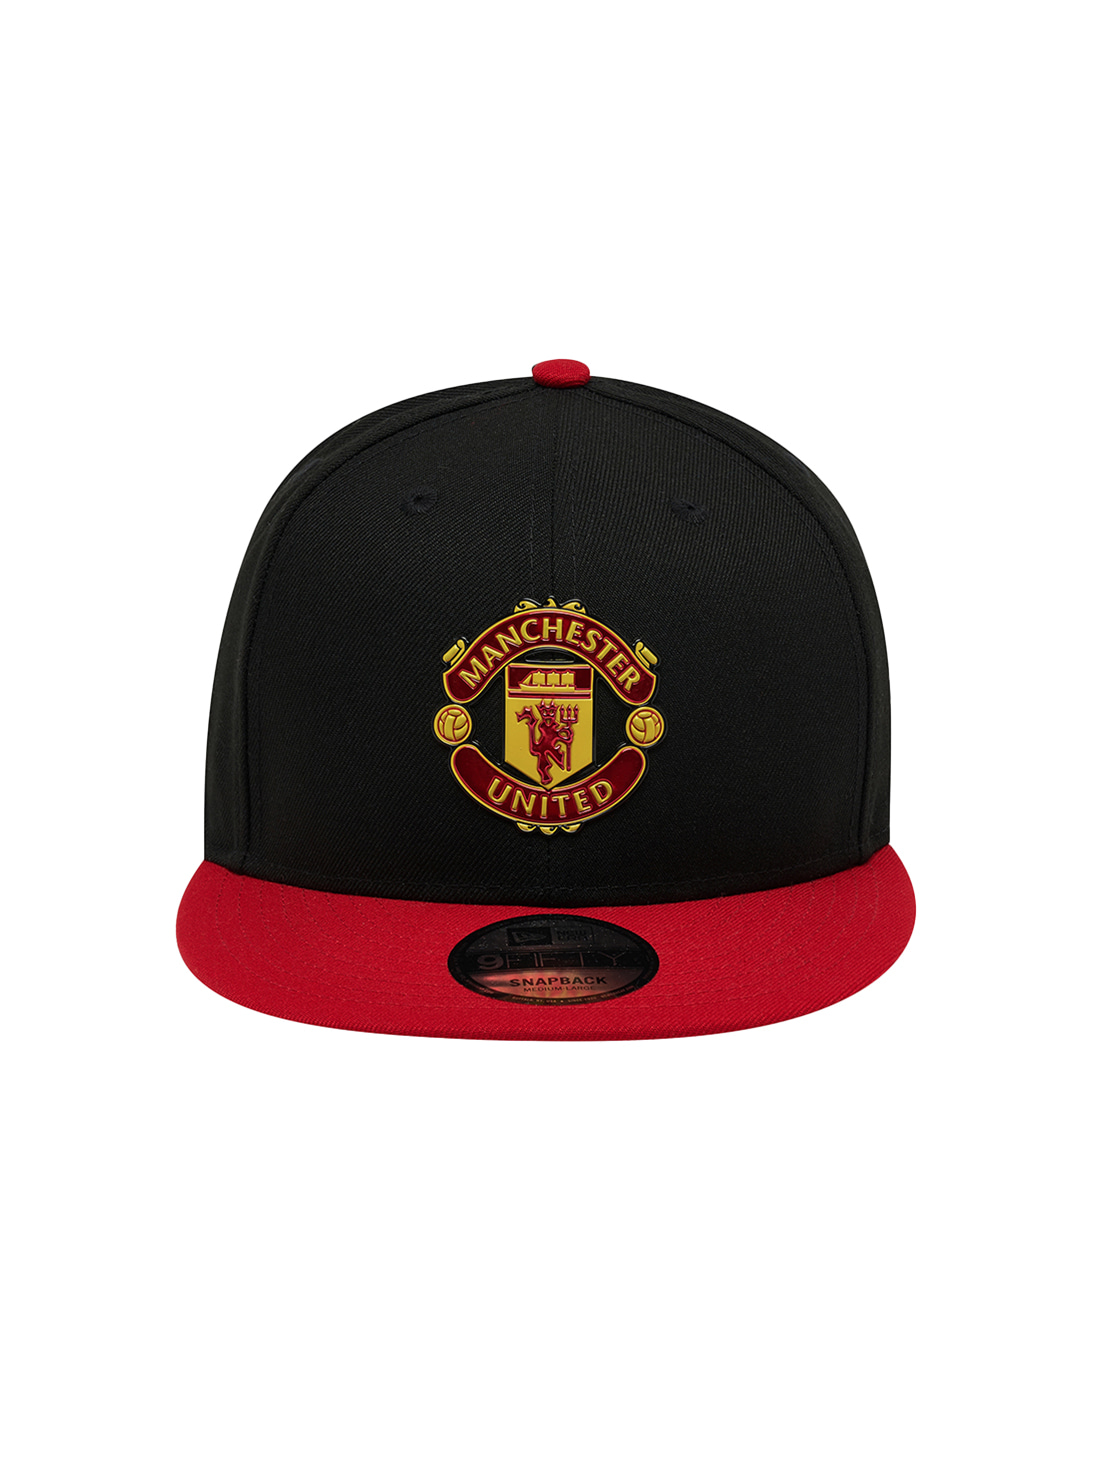 GOALSTUDIO MAN U 950 SNAPBACK - BLACK